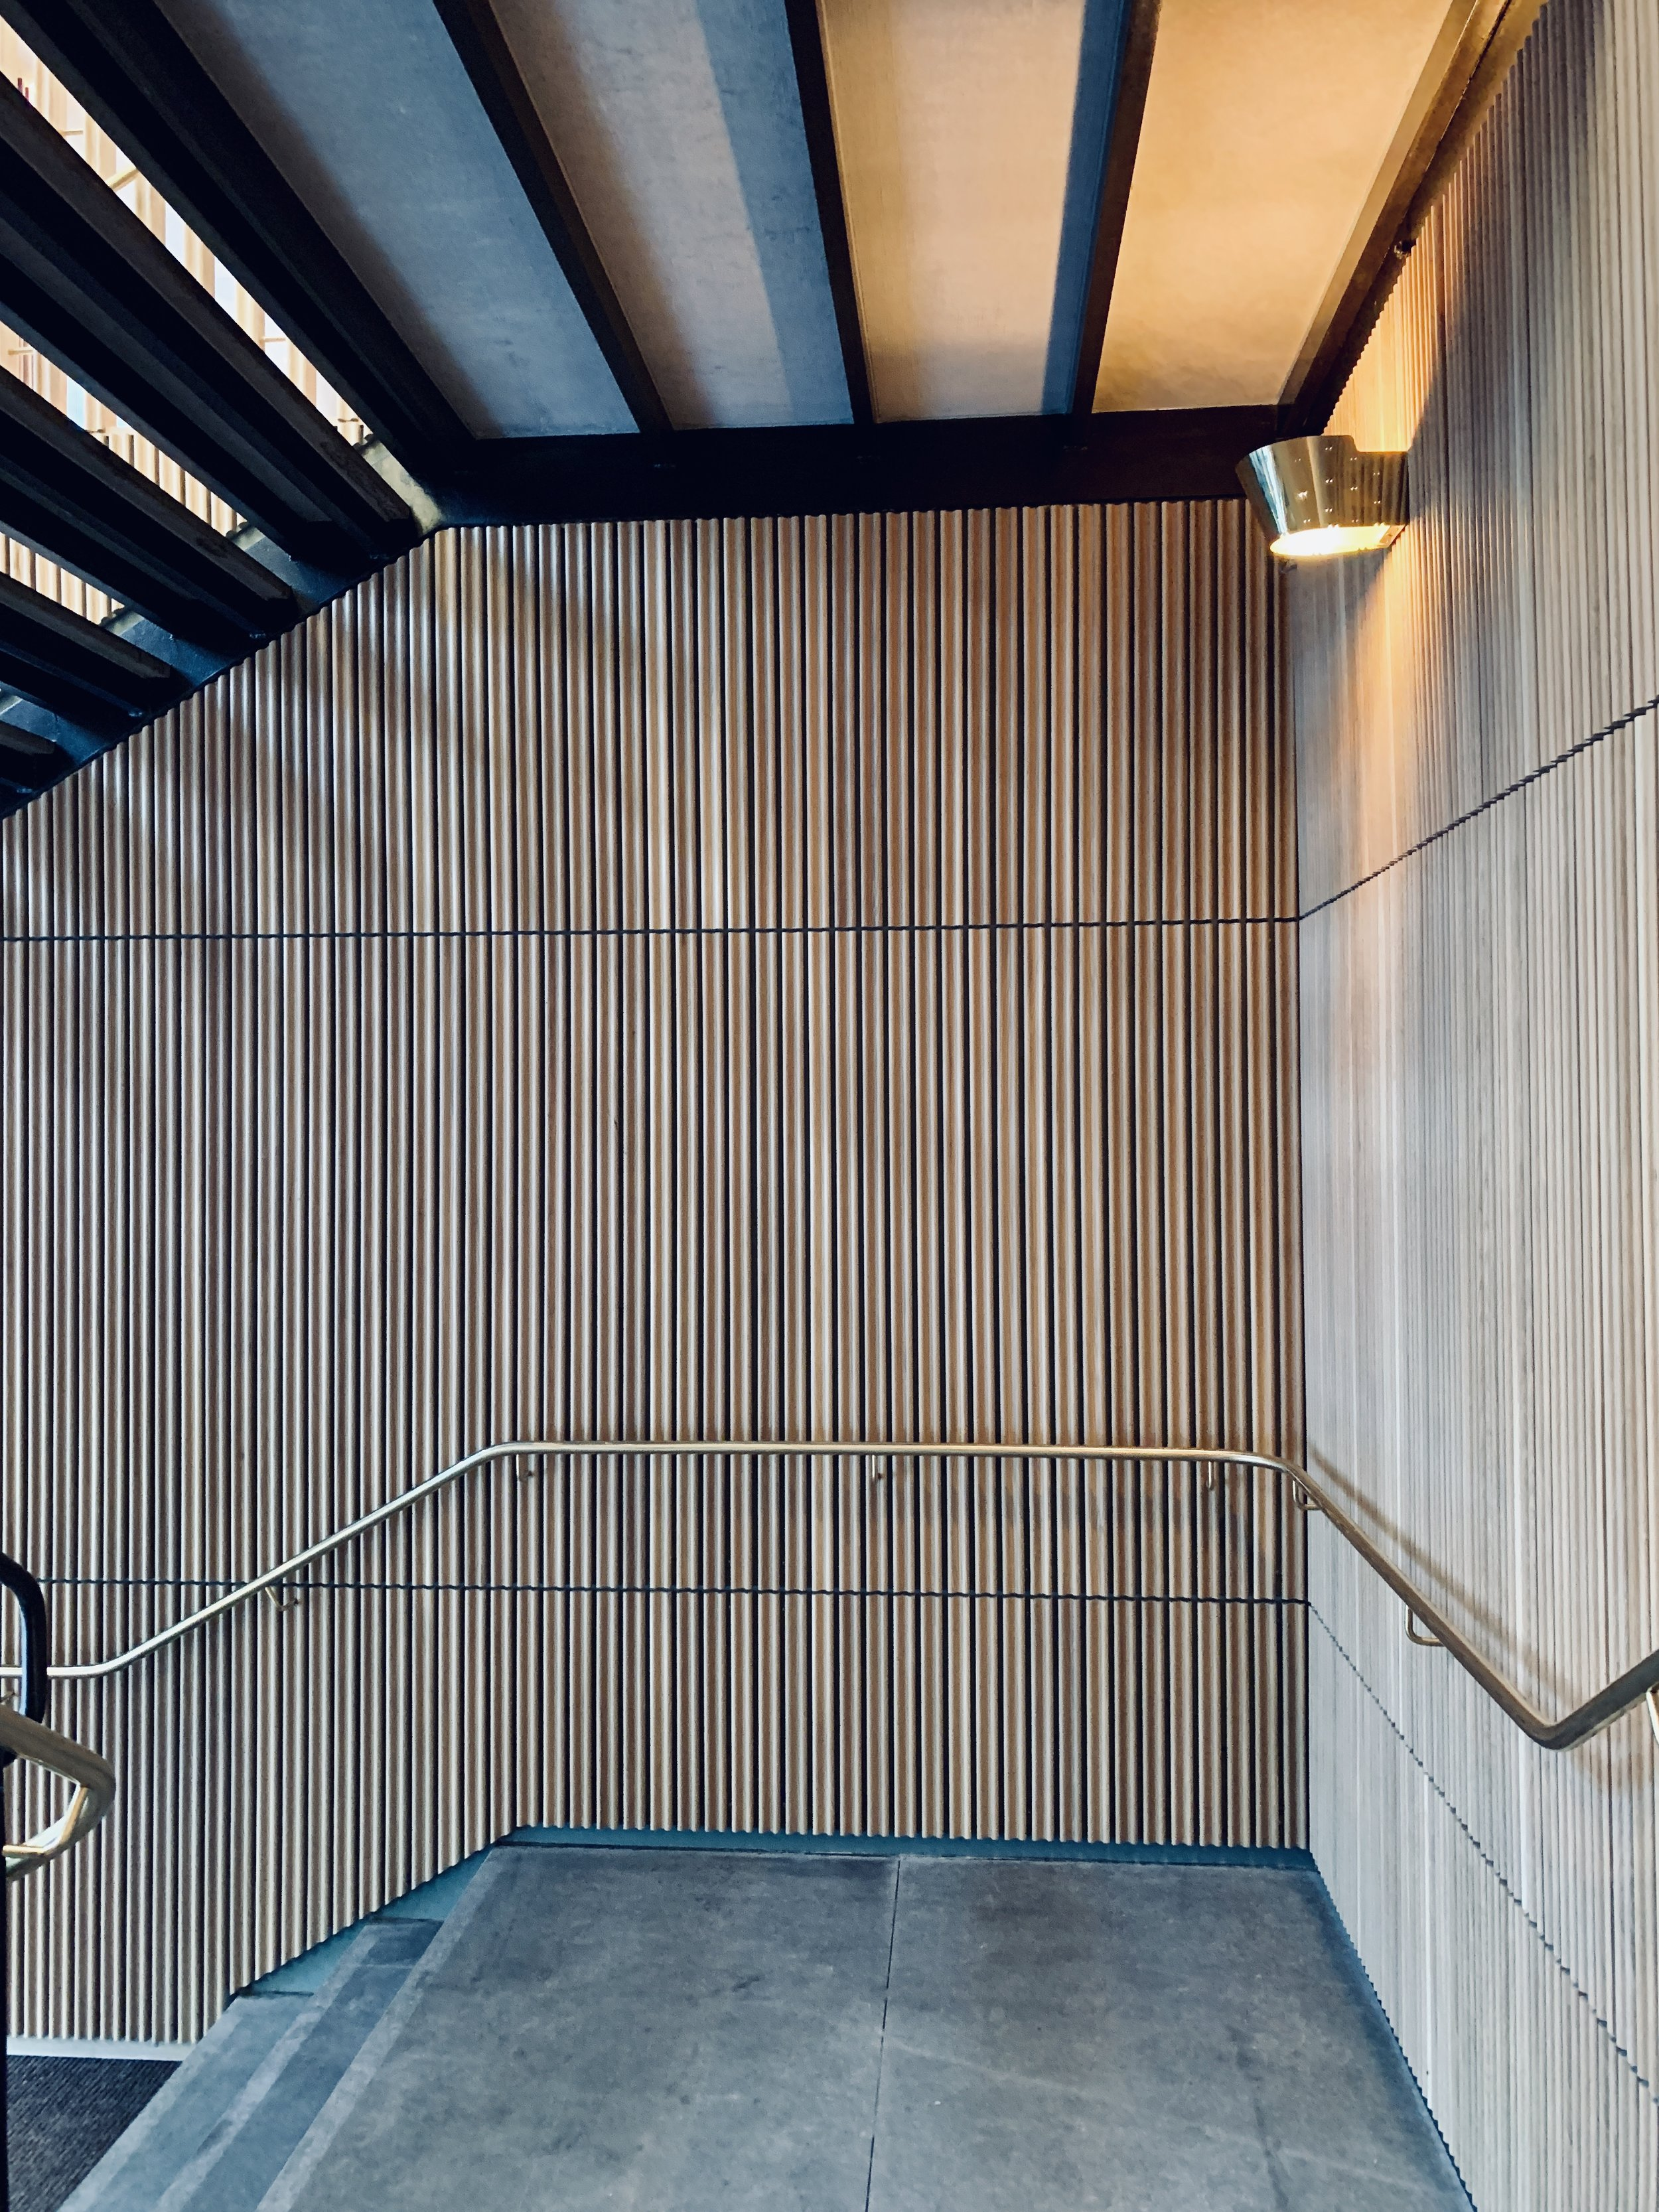 Restaurant Tivander architect drawn concrete staircase, brass hand railing and lighting